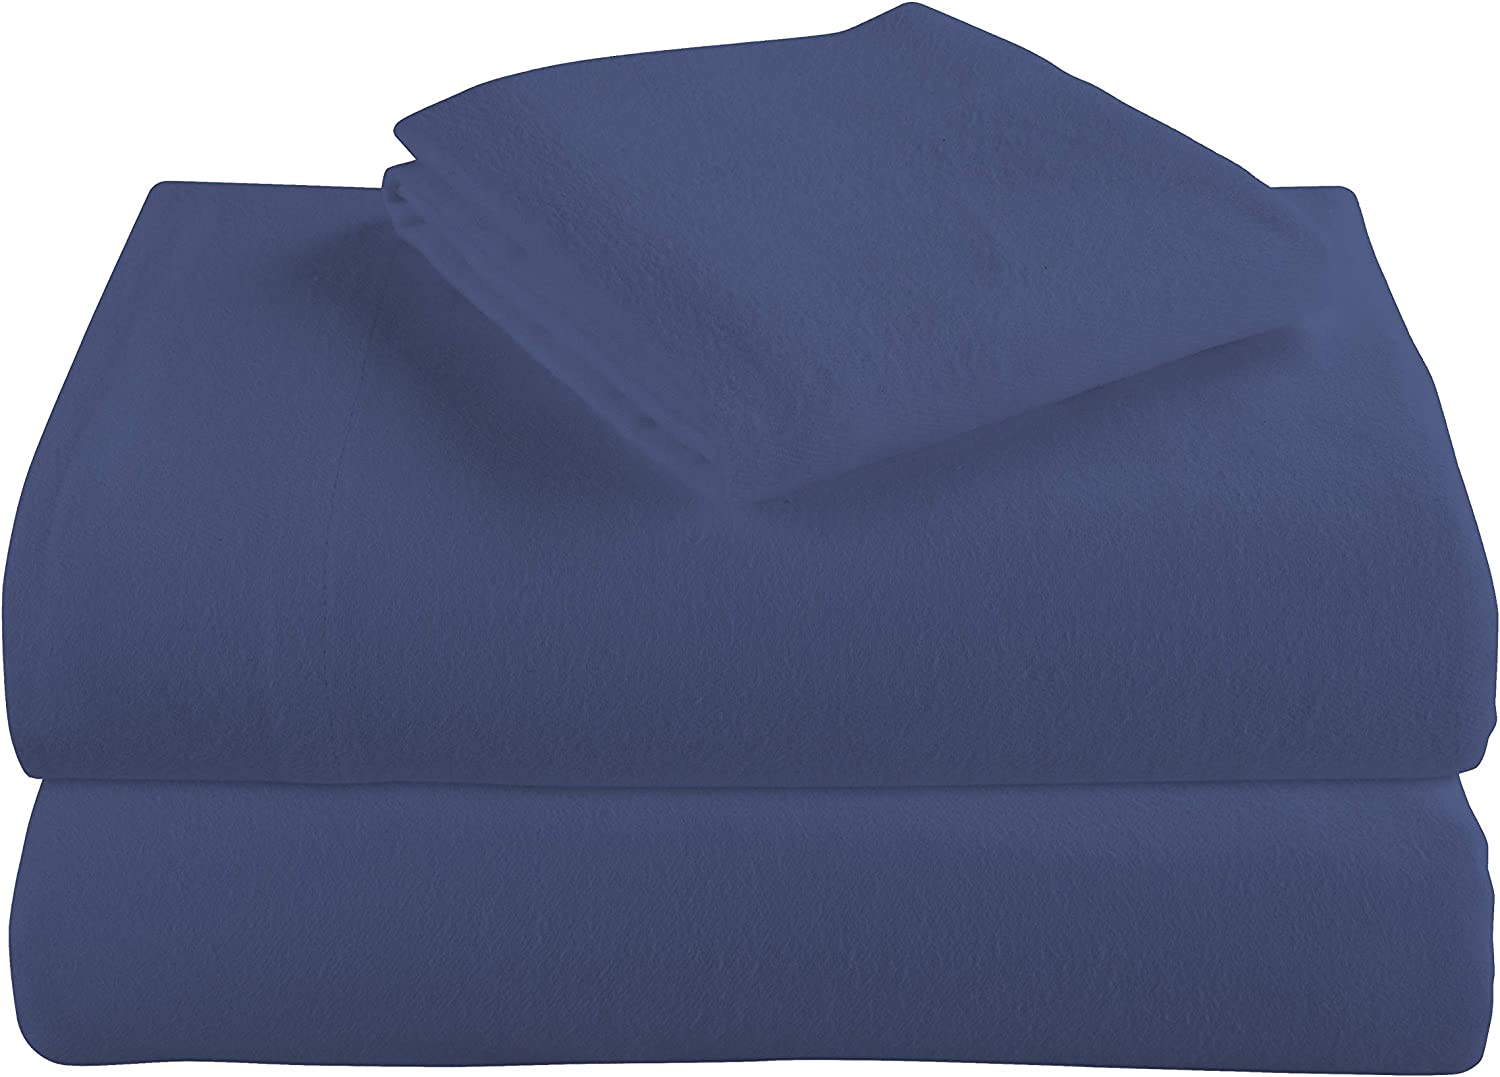 Cotton Turkish Flannel Sheets by Morgan Home - 100% Brushed Cotton for Supreme Comfort - Deep Pockets - Warm and Cozy, Great for All Seasons (Blue, Queen)